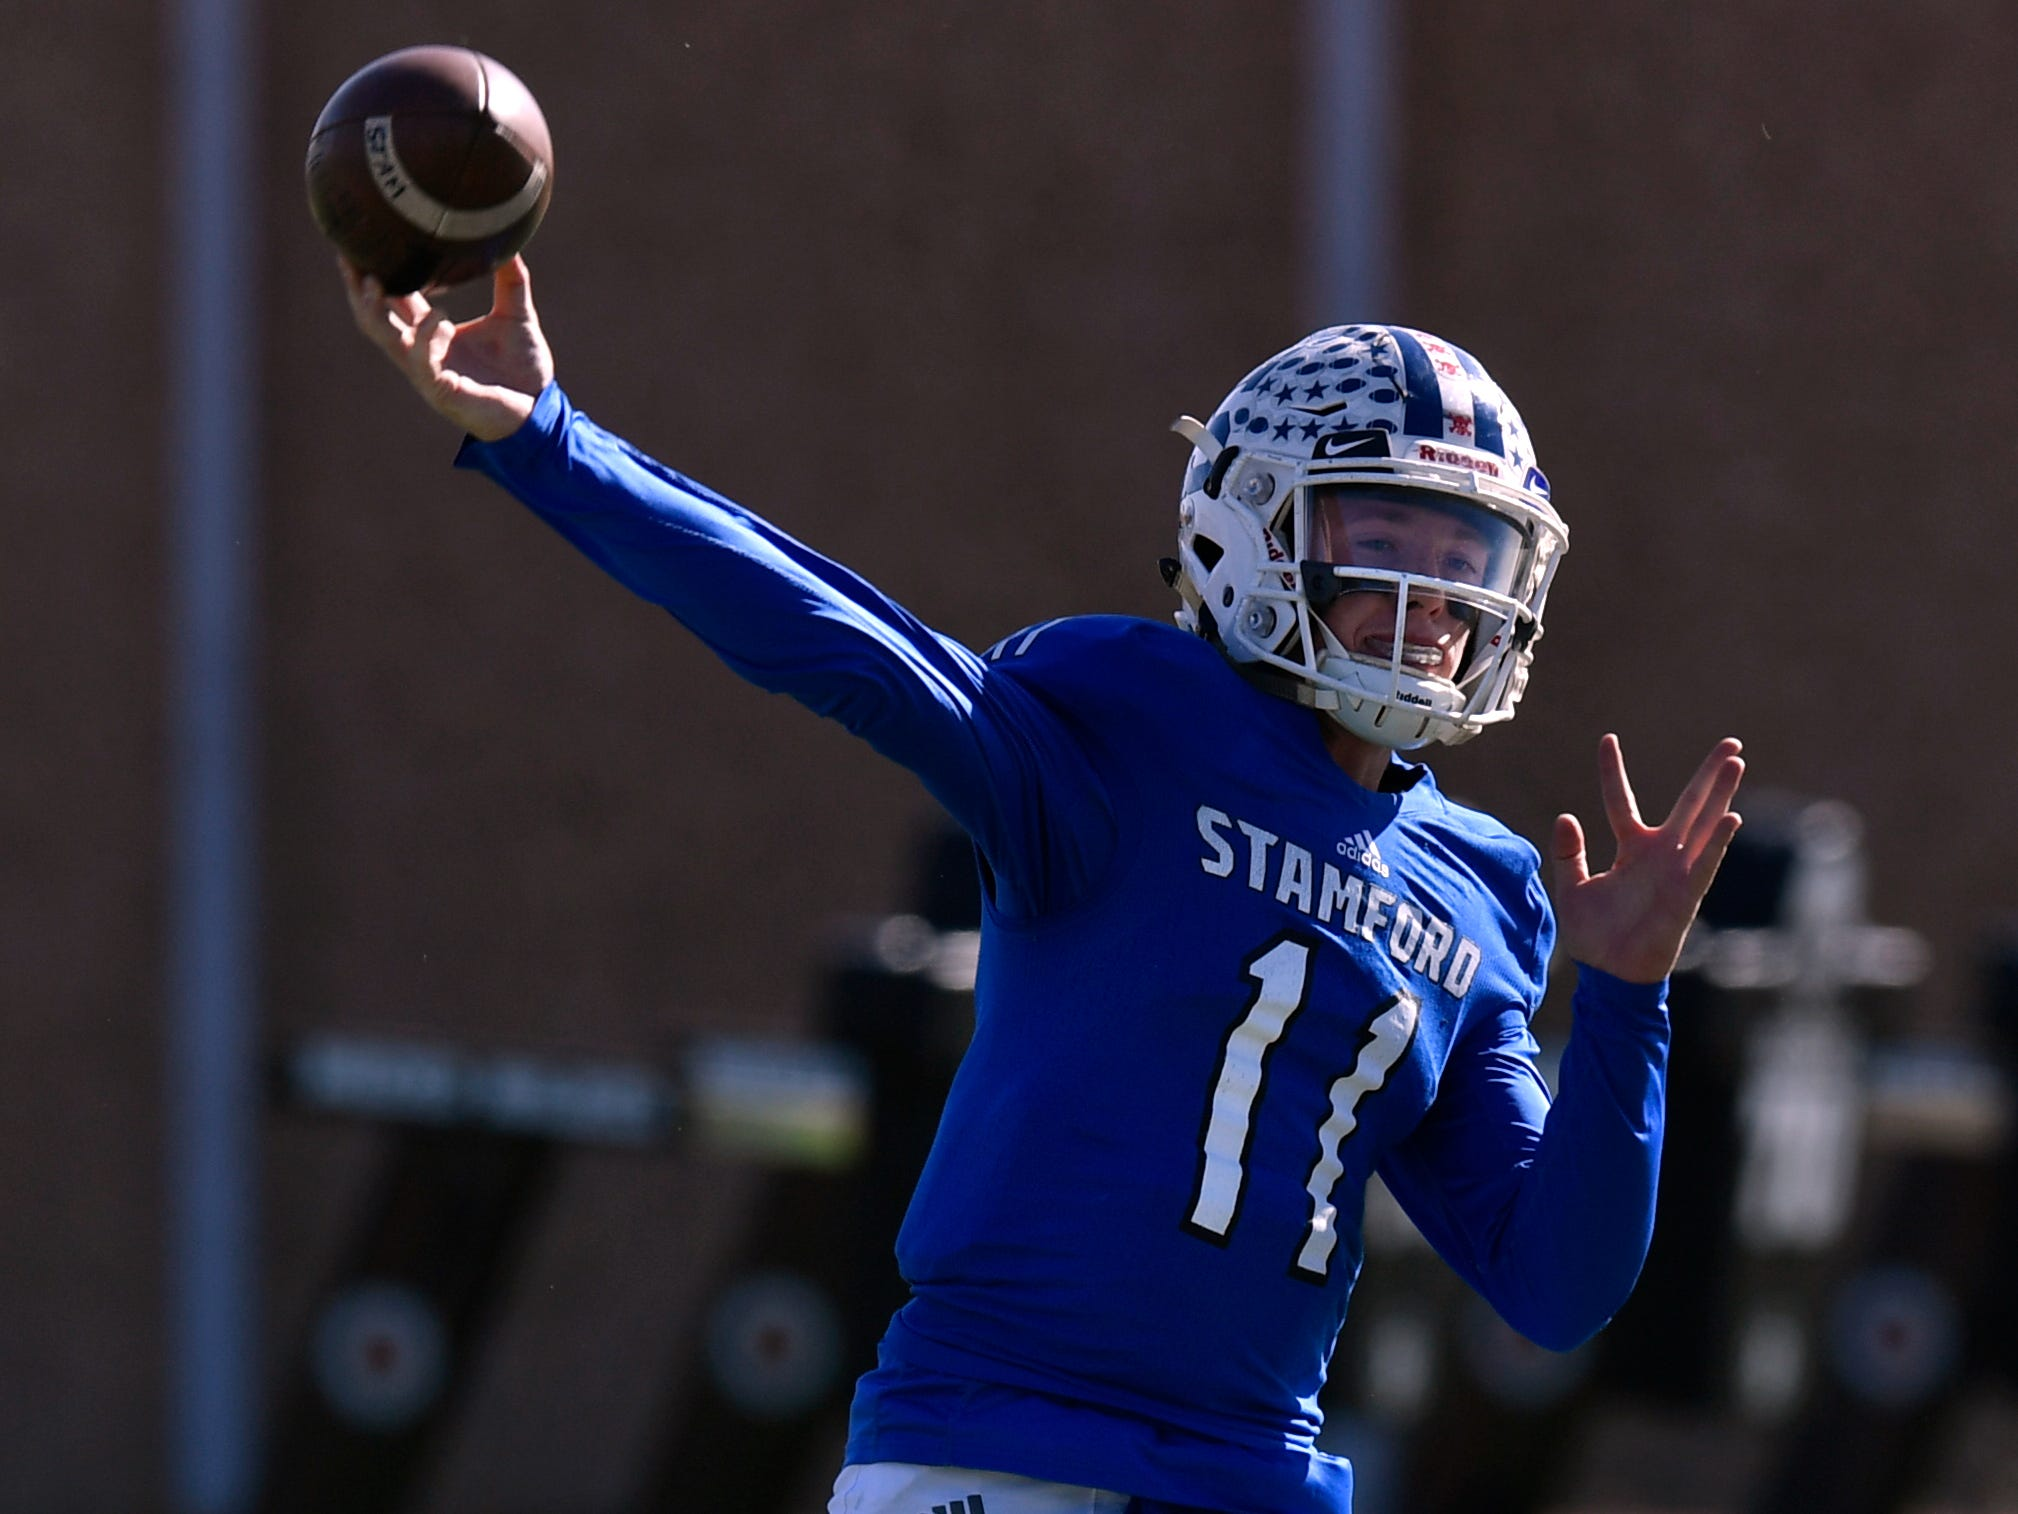 Bulldog quarterback Peyton Bevel passes for Stamford during their playoff game against New Deal in Snyder Friday Nov. 23, 2018. Final score was 64-6, New Deal.